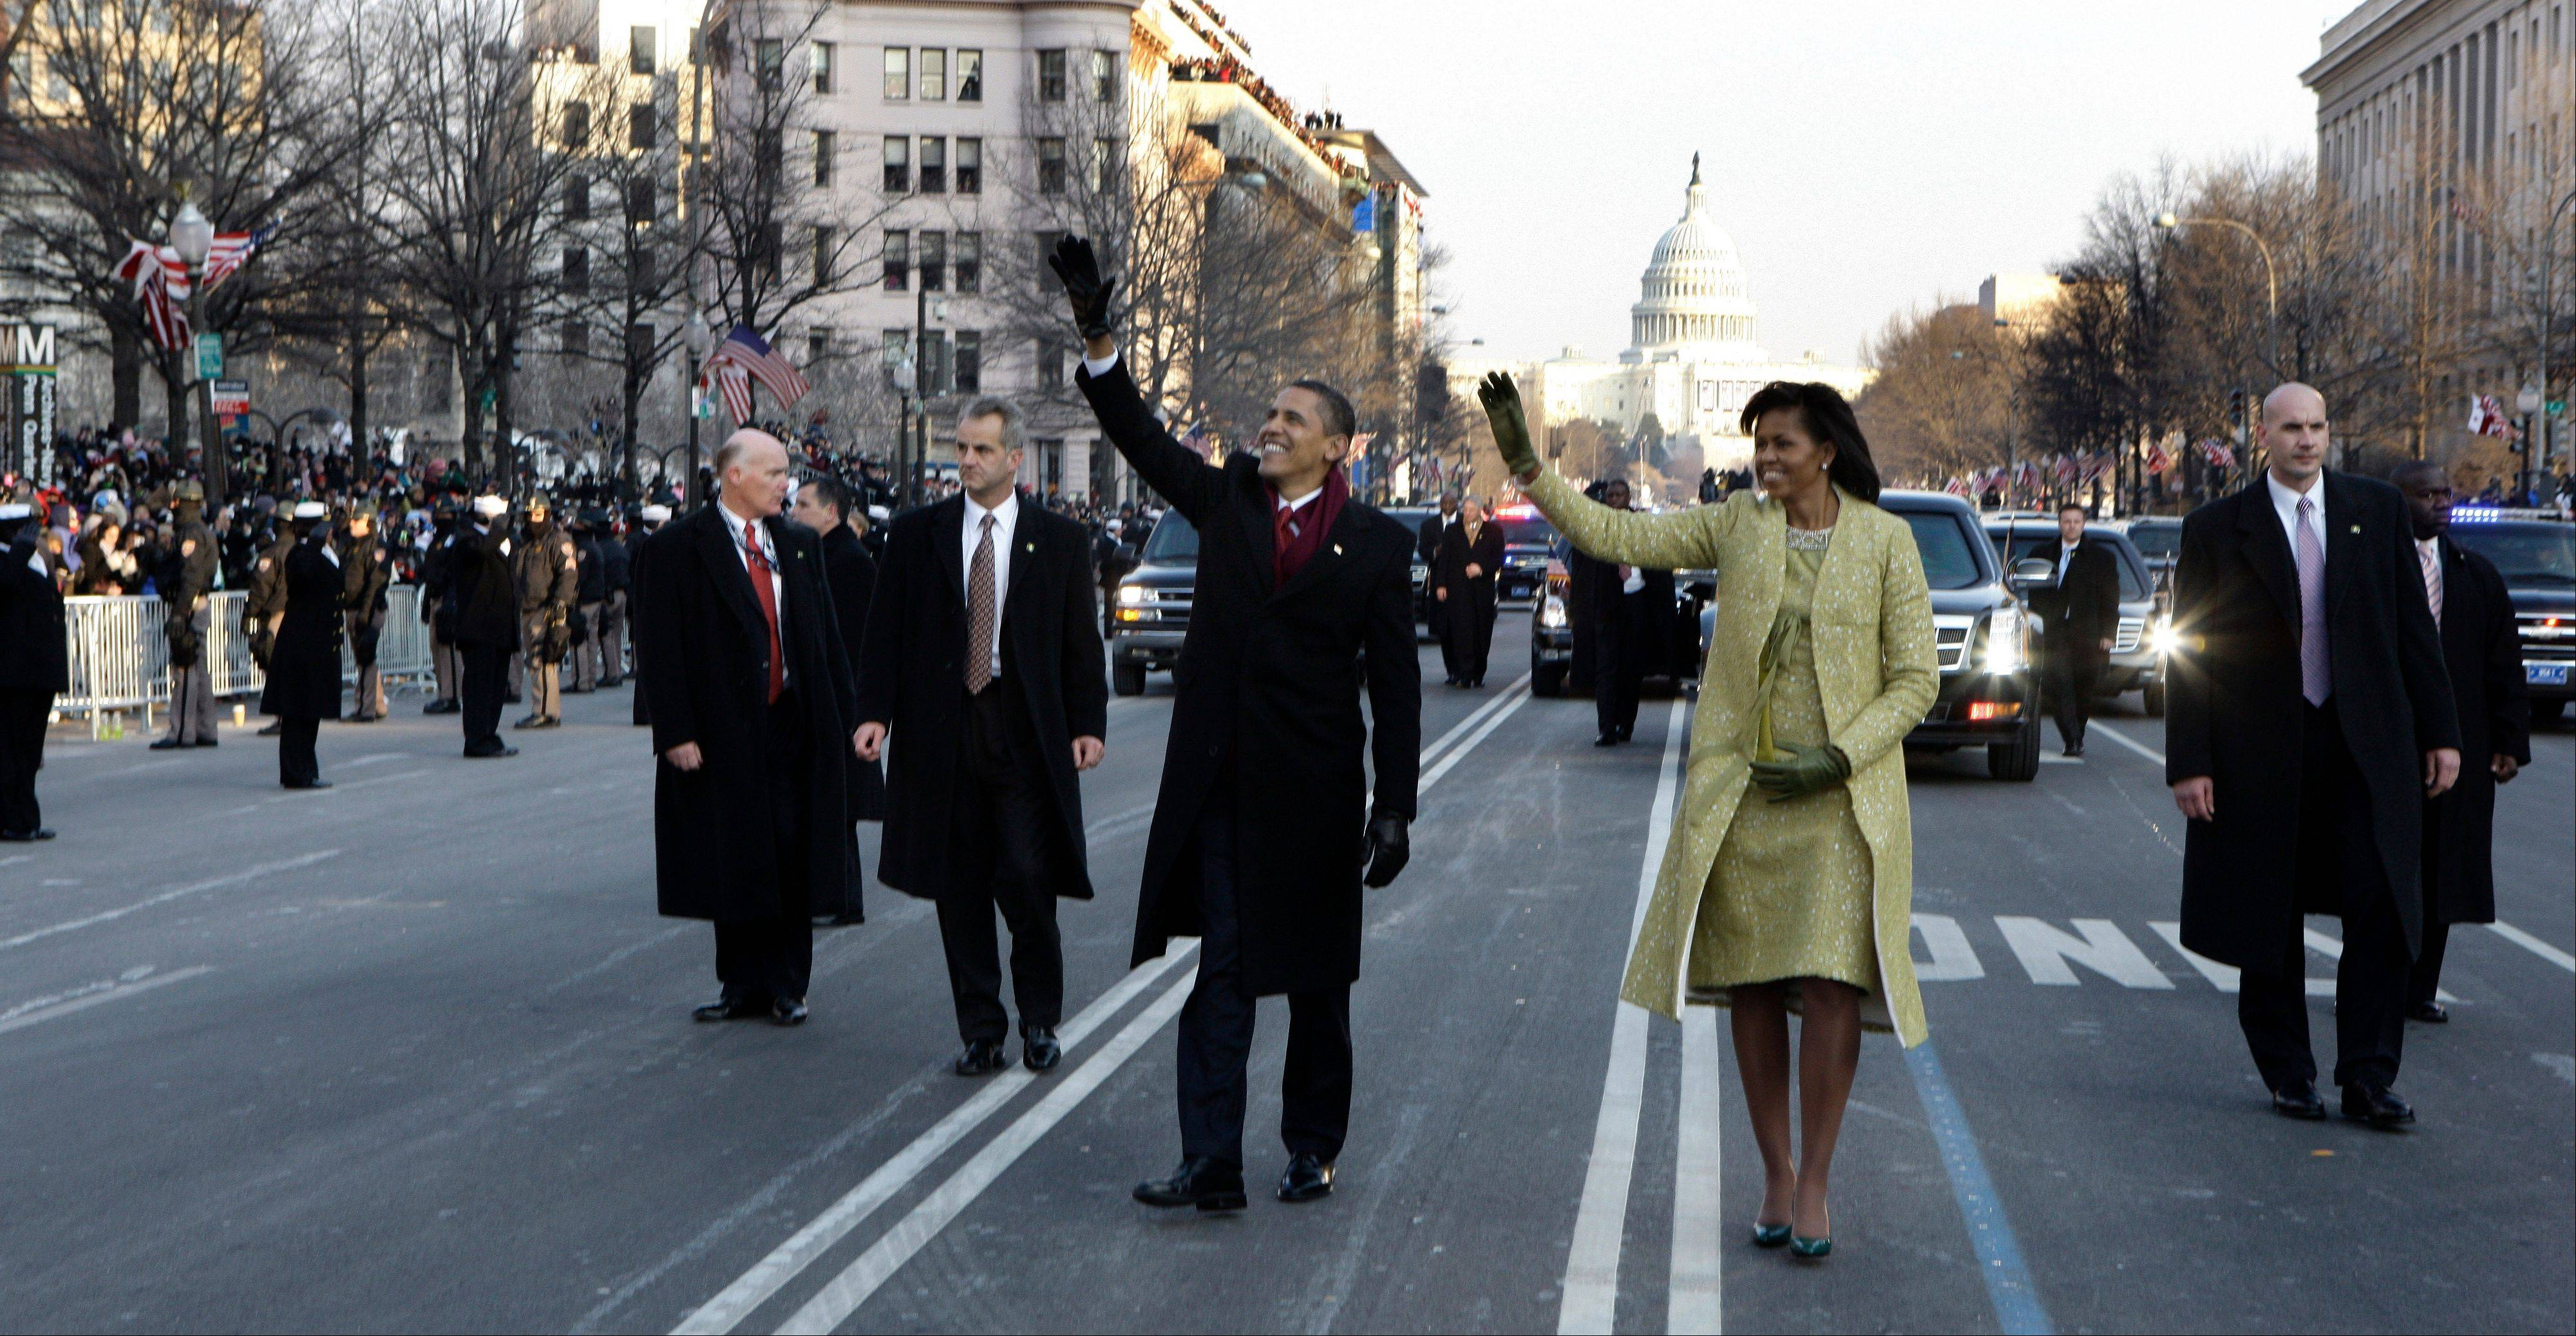 President Barack Obama and first lady Michelle Obama wave as they walk down Pennsylvania Avenue en route to the White House from the Capitol in Washington on Jan. 20, 2009.